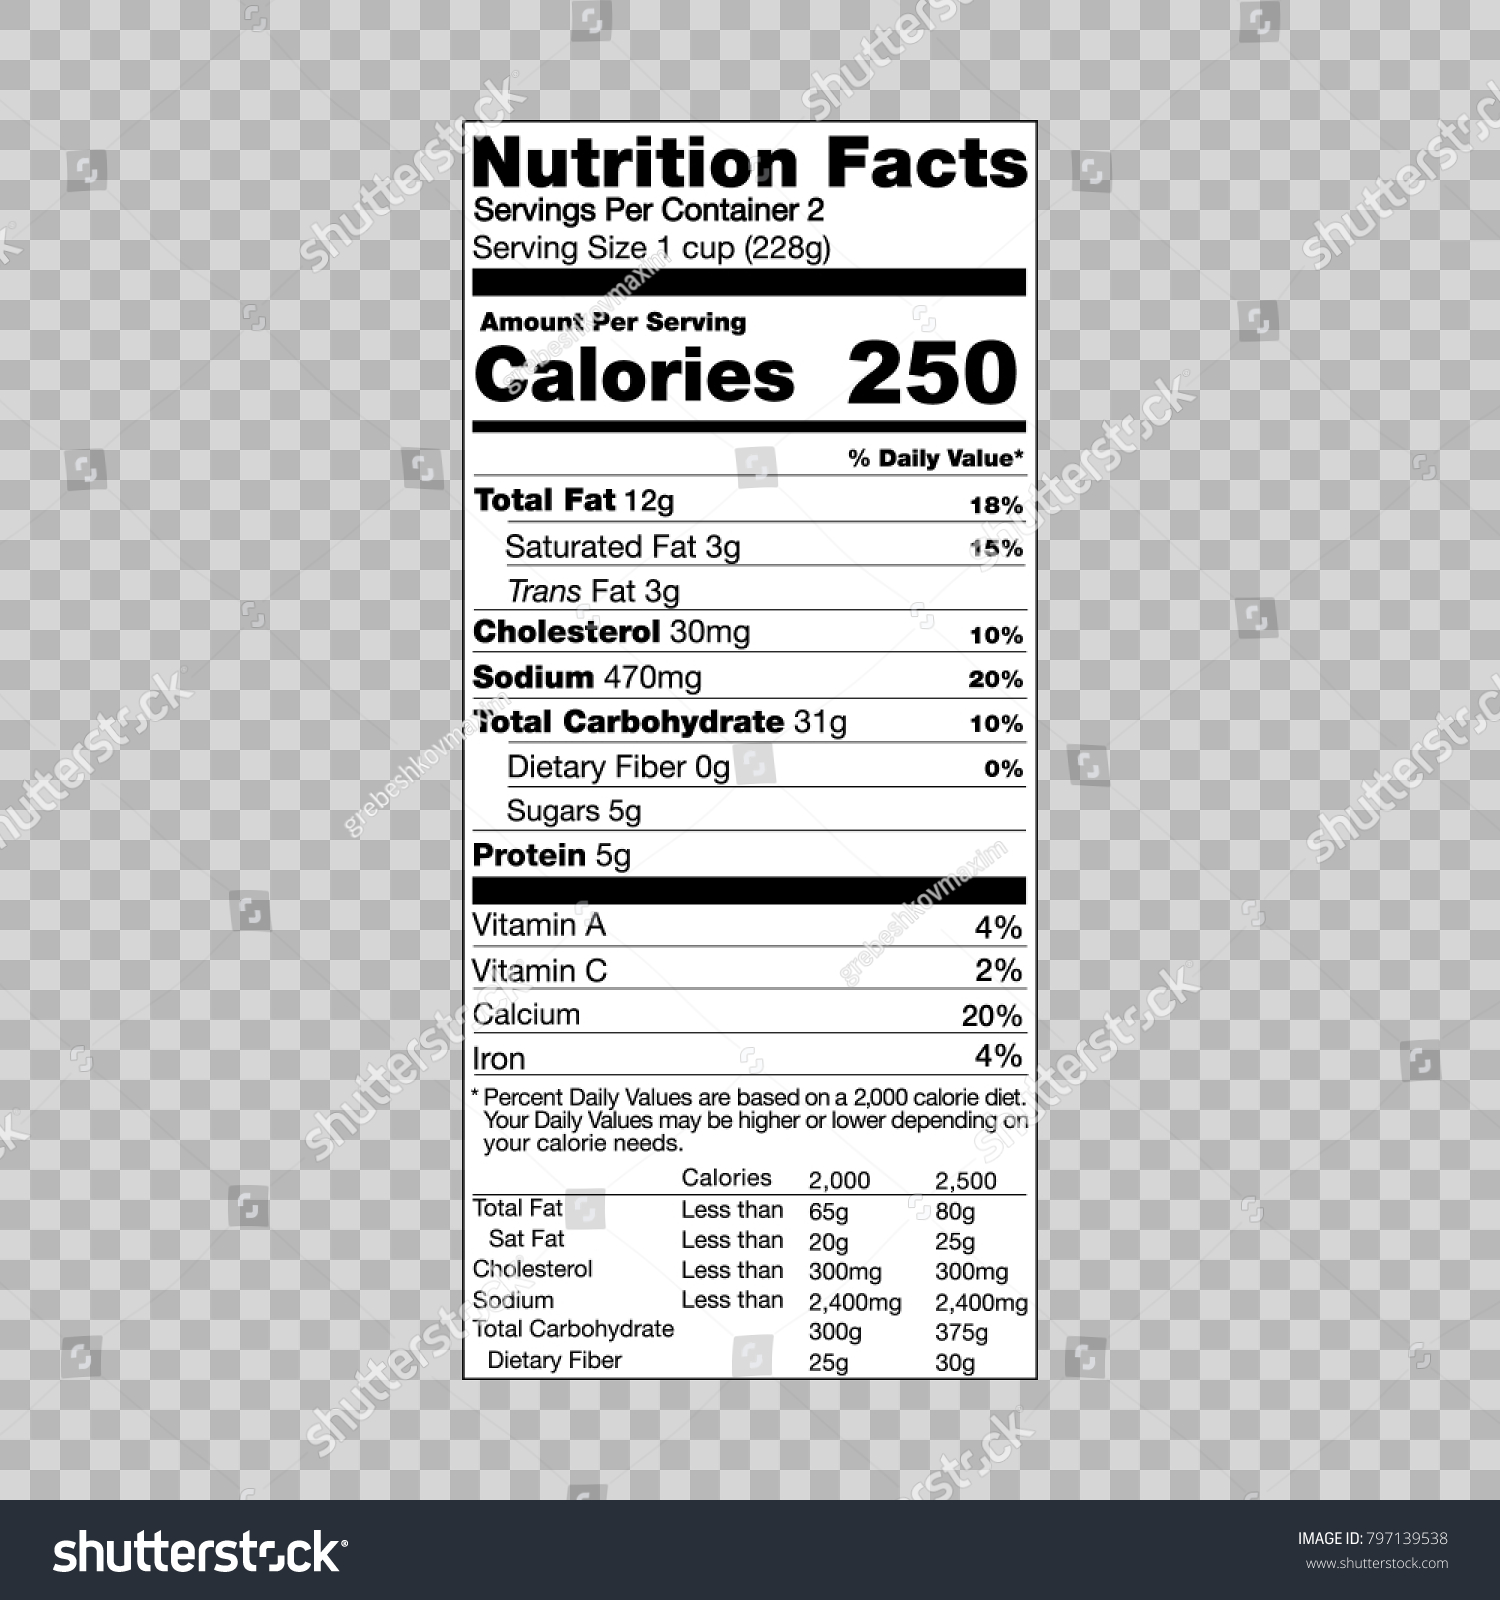 nutrition facts information template food label のベクター画像素材